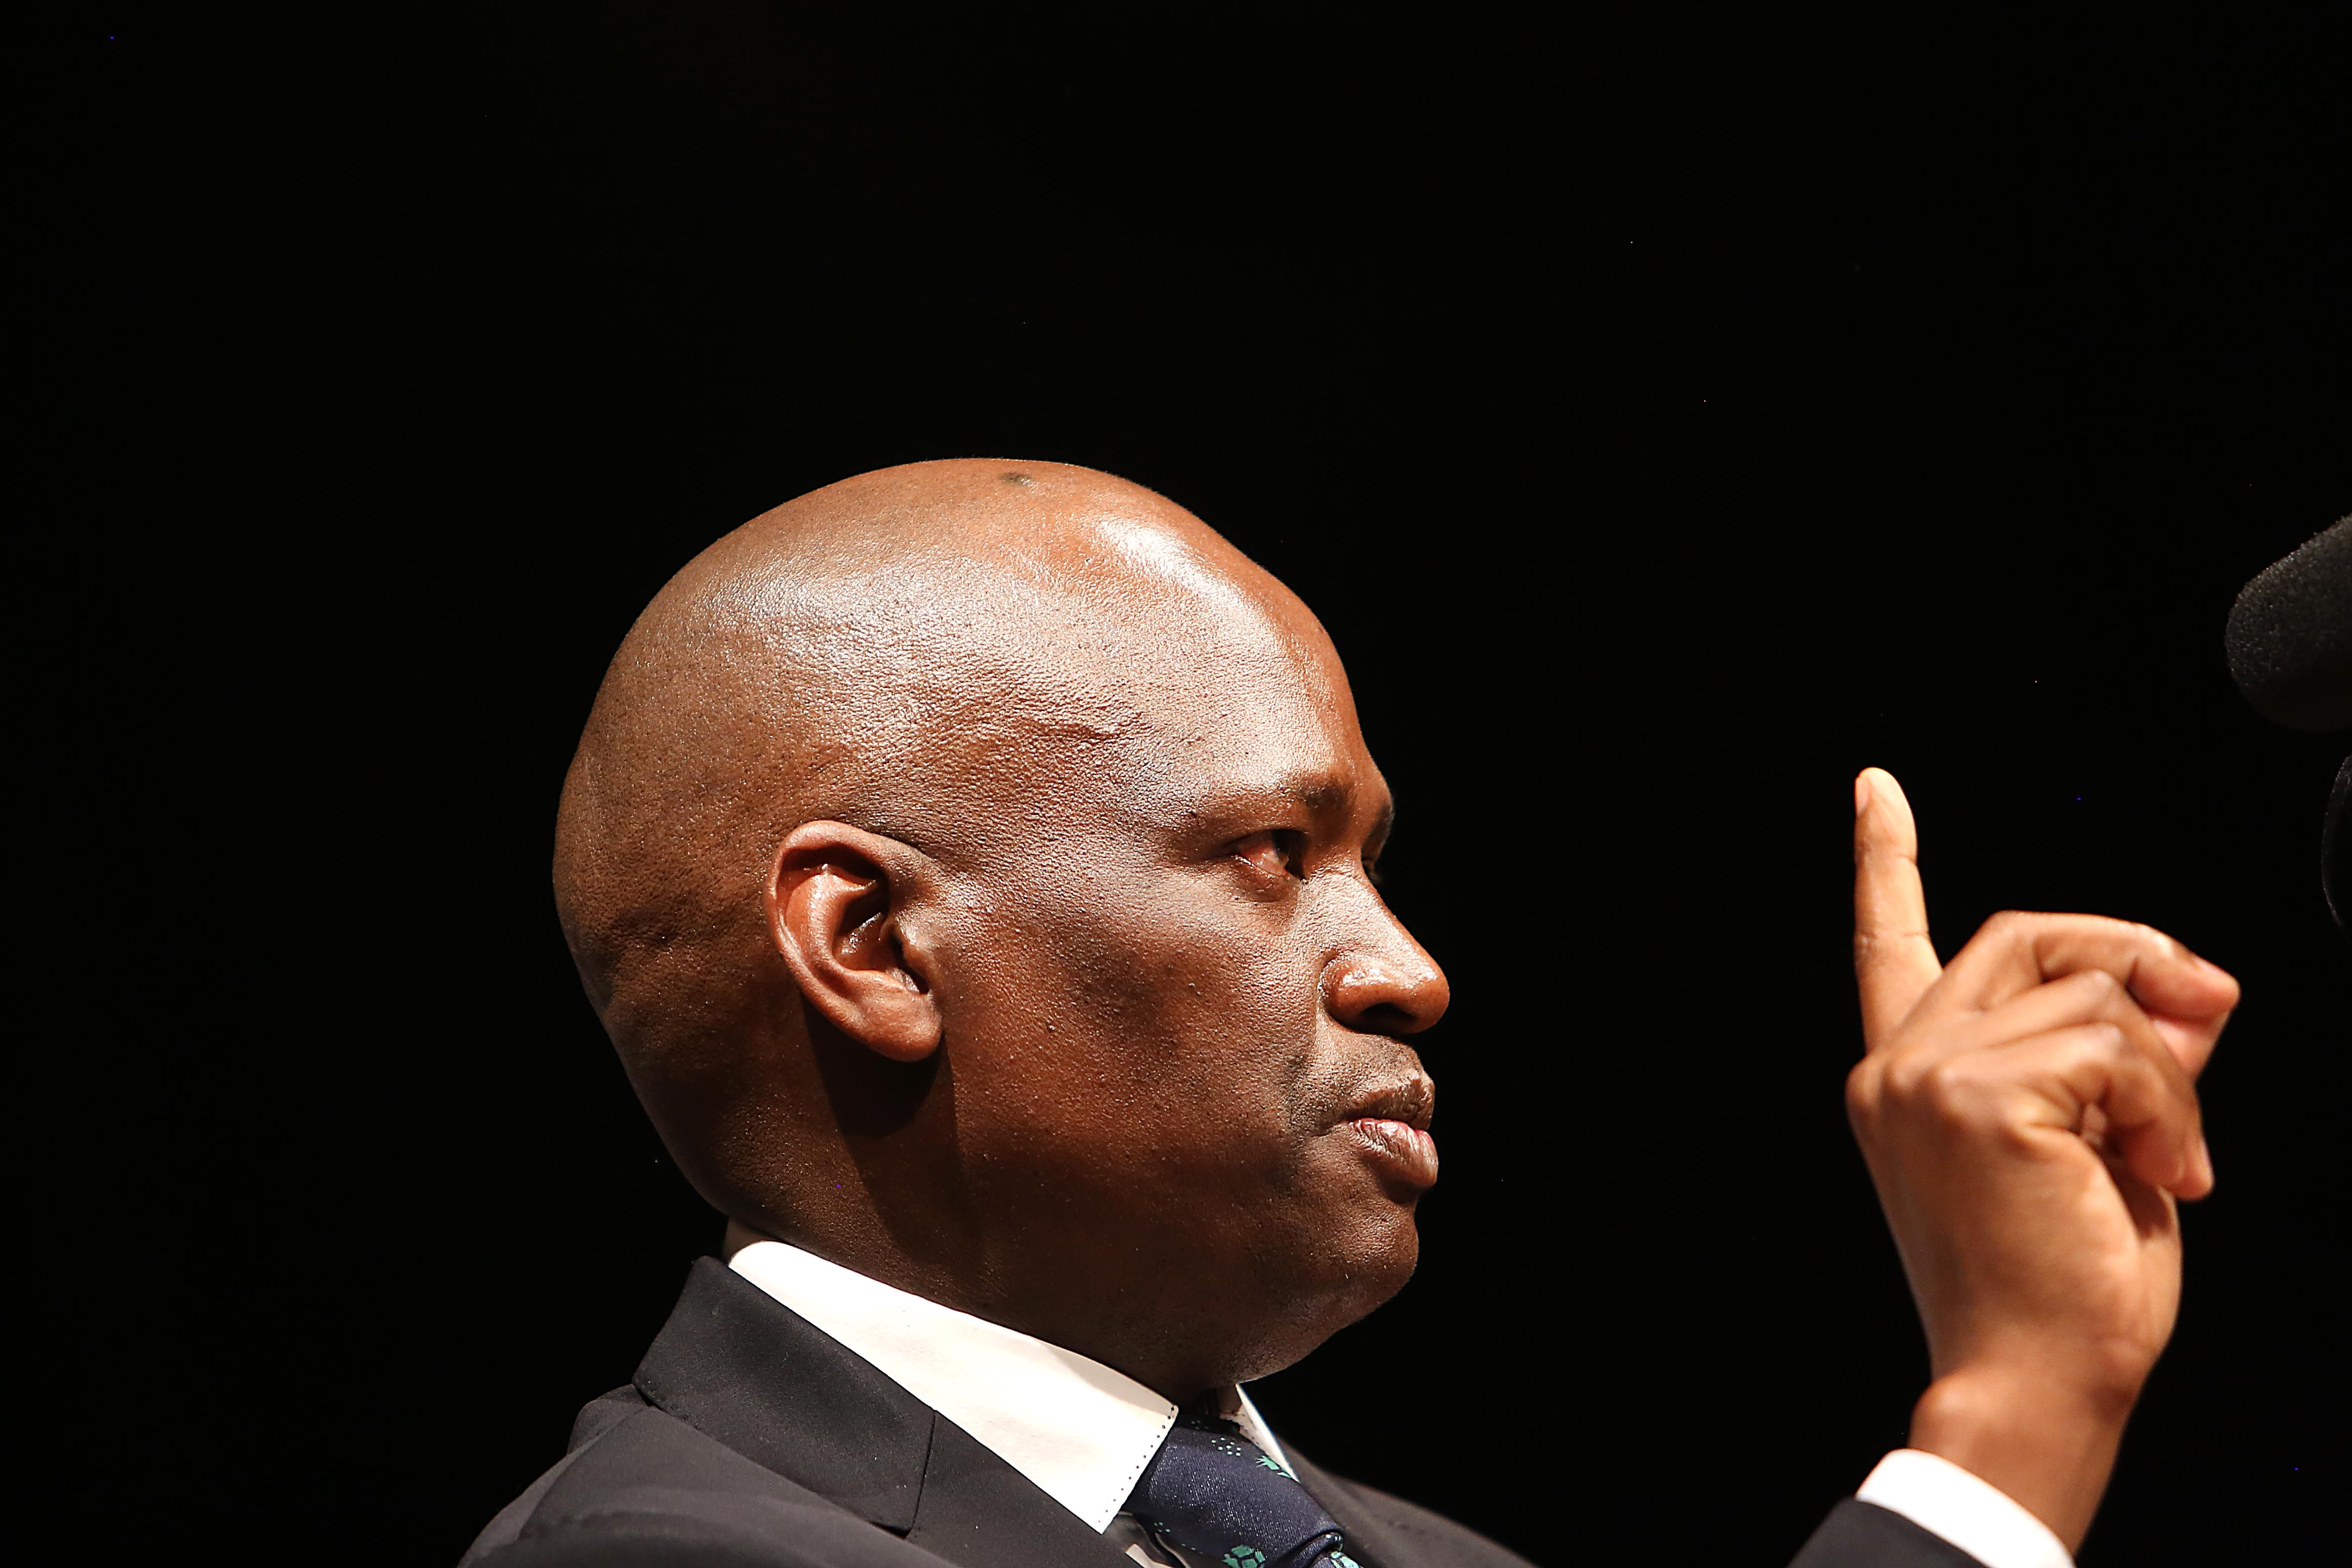 6 October 2016: SABC acting chief operating officer Hlaudi Motsoeneng signed the allegedly 'unlawful' deal with MultiChoice that is under scrutiny at the Zondo commission. (Photograph by Gallo Images/The Times/Alon Skuy)